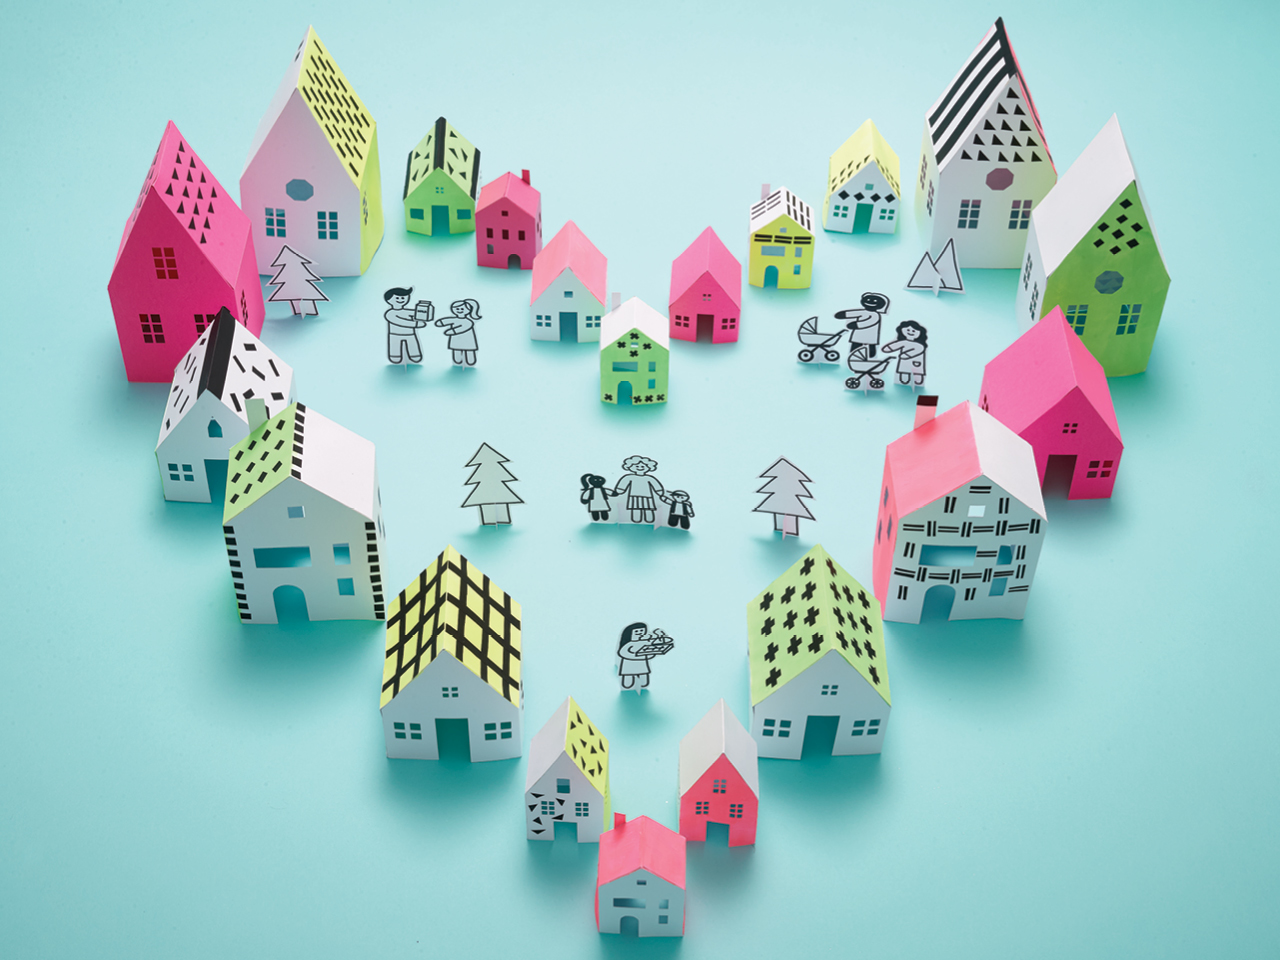 Small model houses made out of paper in a heart shape surrounding families made out of paper